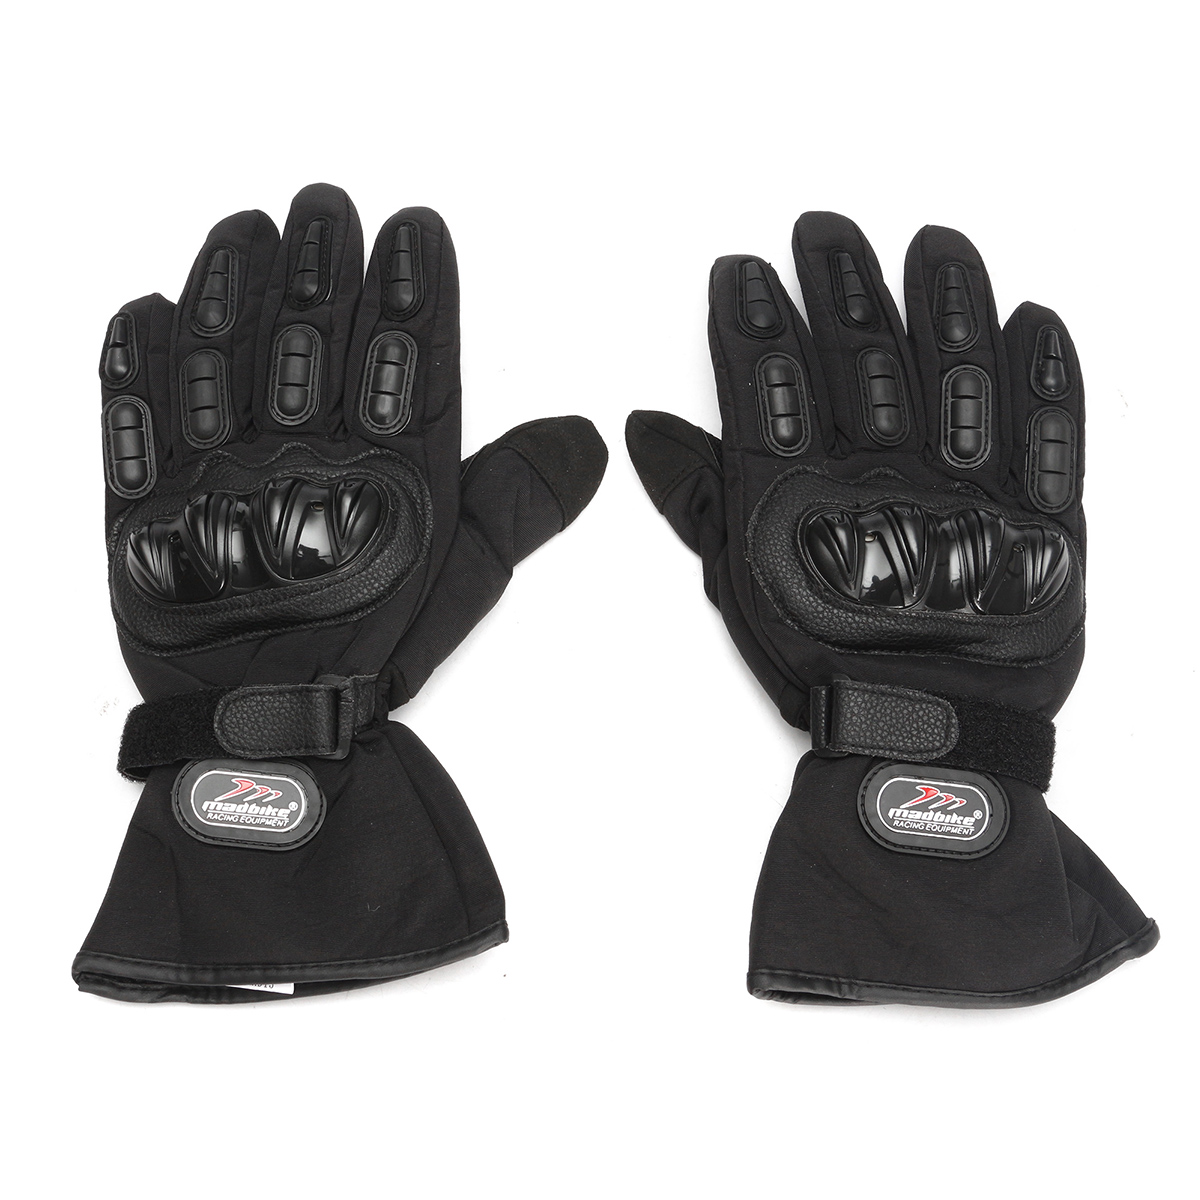 Winter Leather Waterproof Thermal Mittens Motorcycle Gloves M-2XL